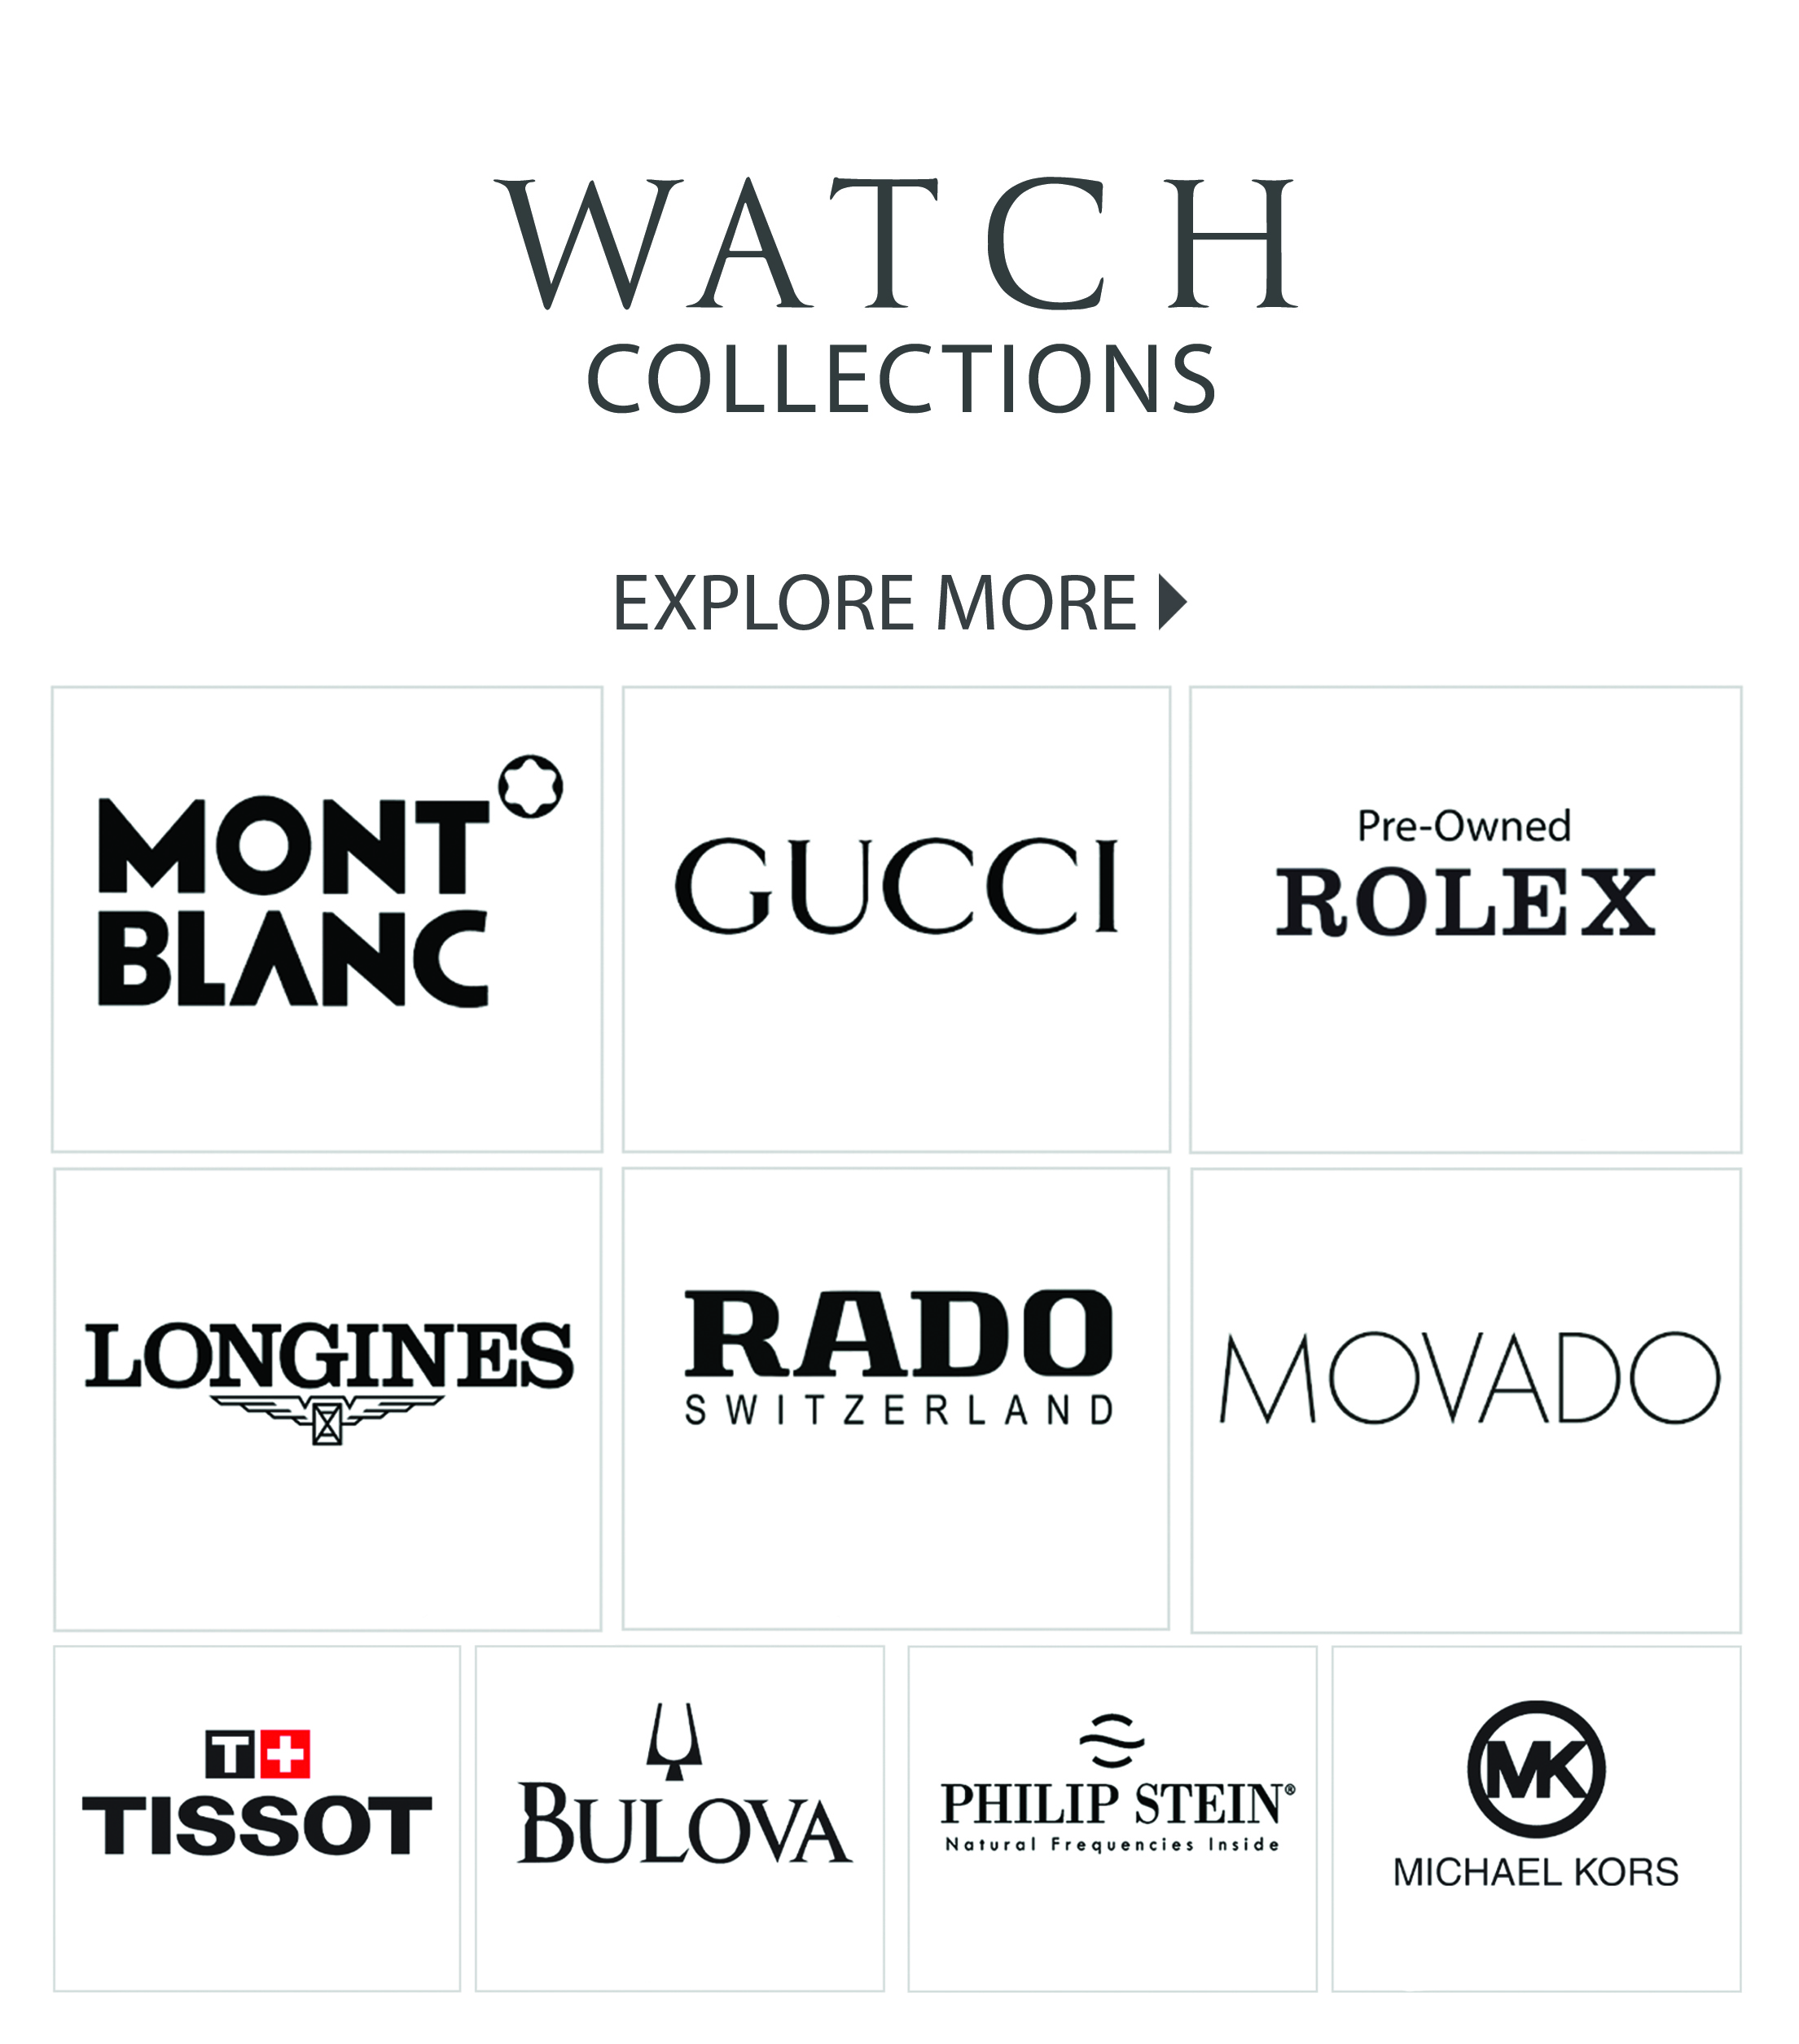 WATCH COLLECTIONS